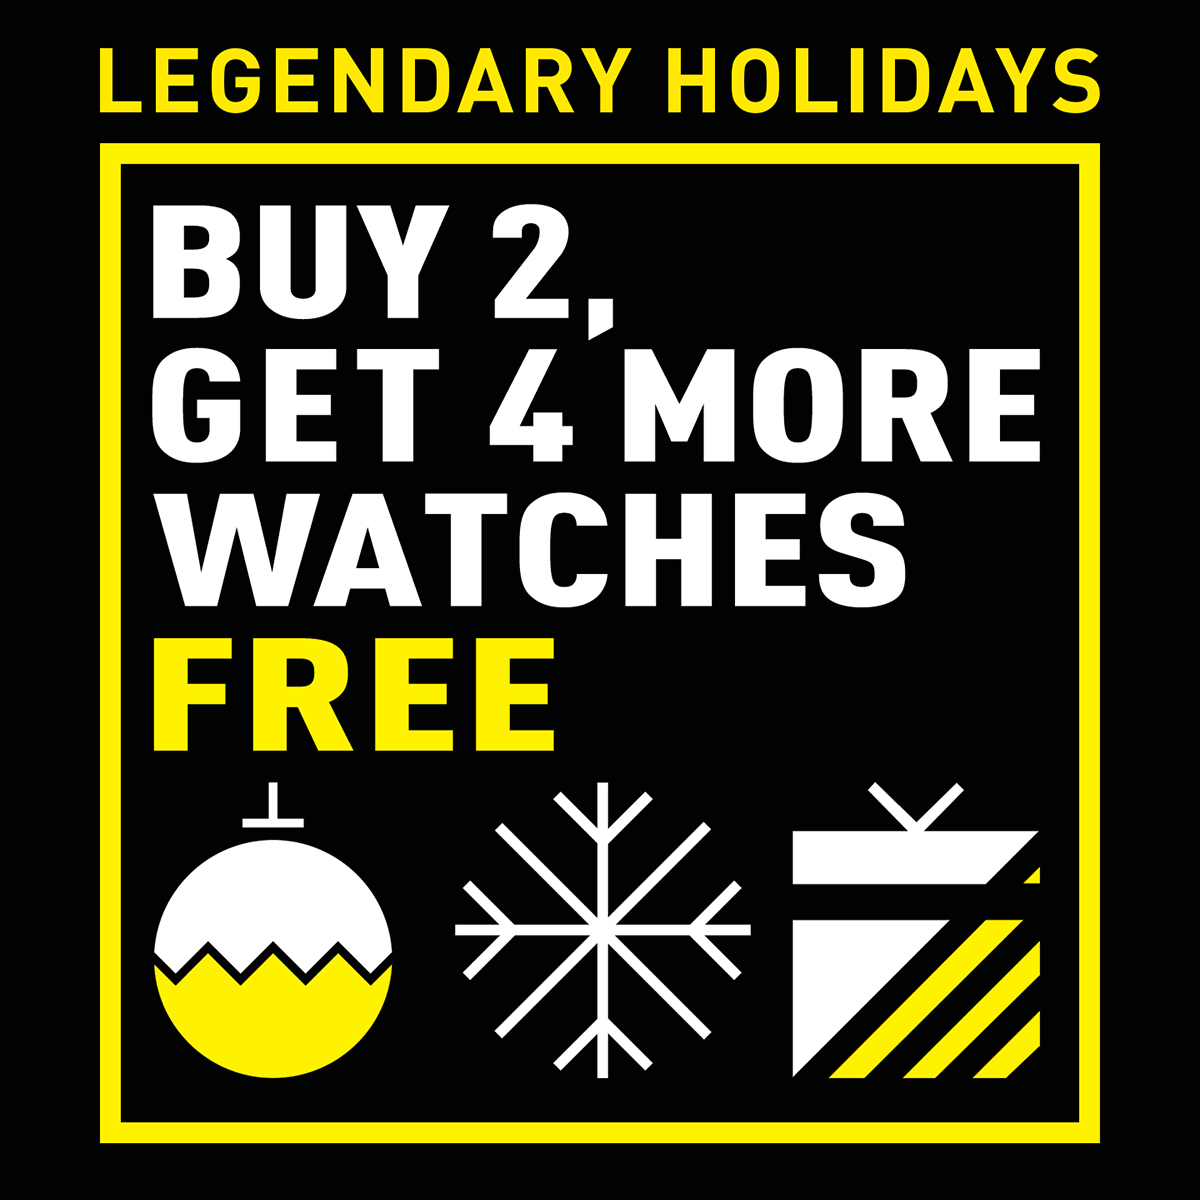 Buy 2, get 4 more watches FREE